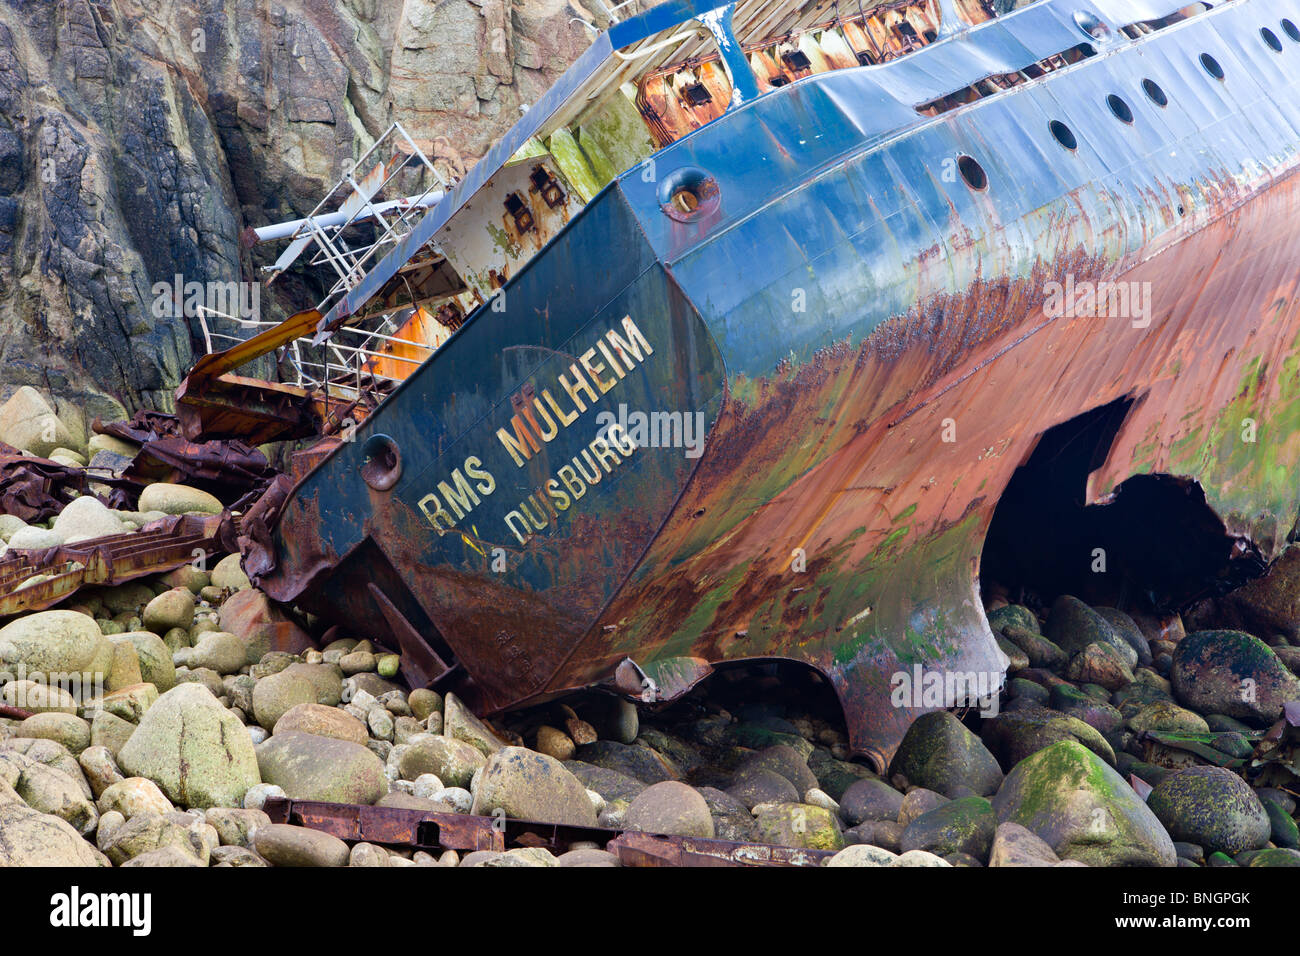 Wreckage of the shipwrecked ship the RMS Mulheim at the base of the cliffs near Land's End, Cornwall, England. - Stock Image